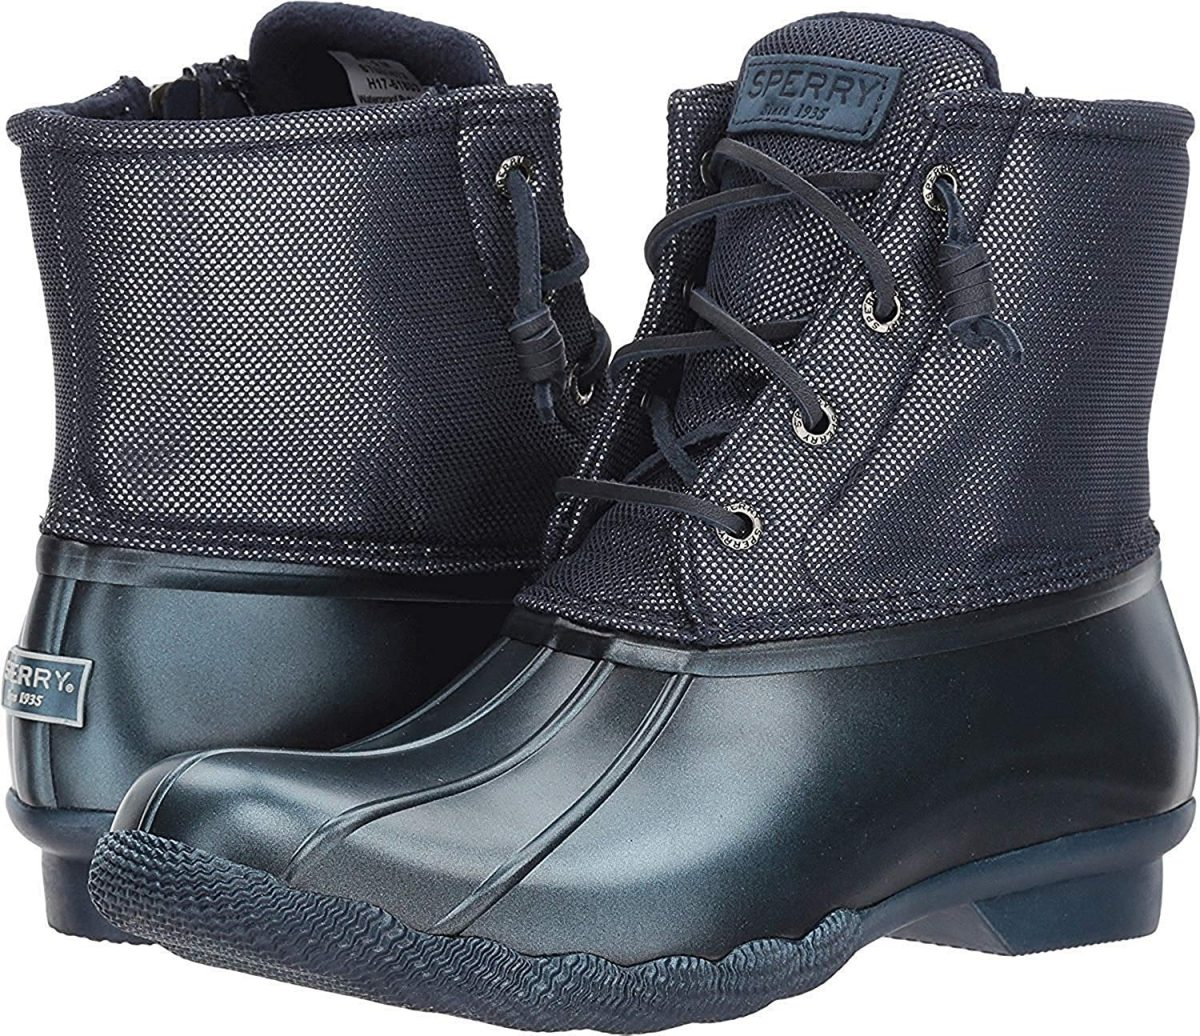 sperry - The 10 Best Waterproof Boots According To Travel Editors